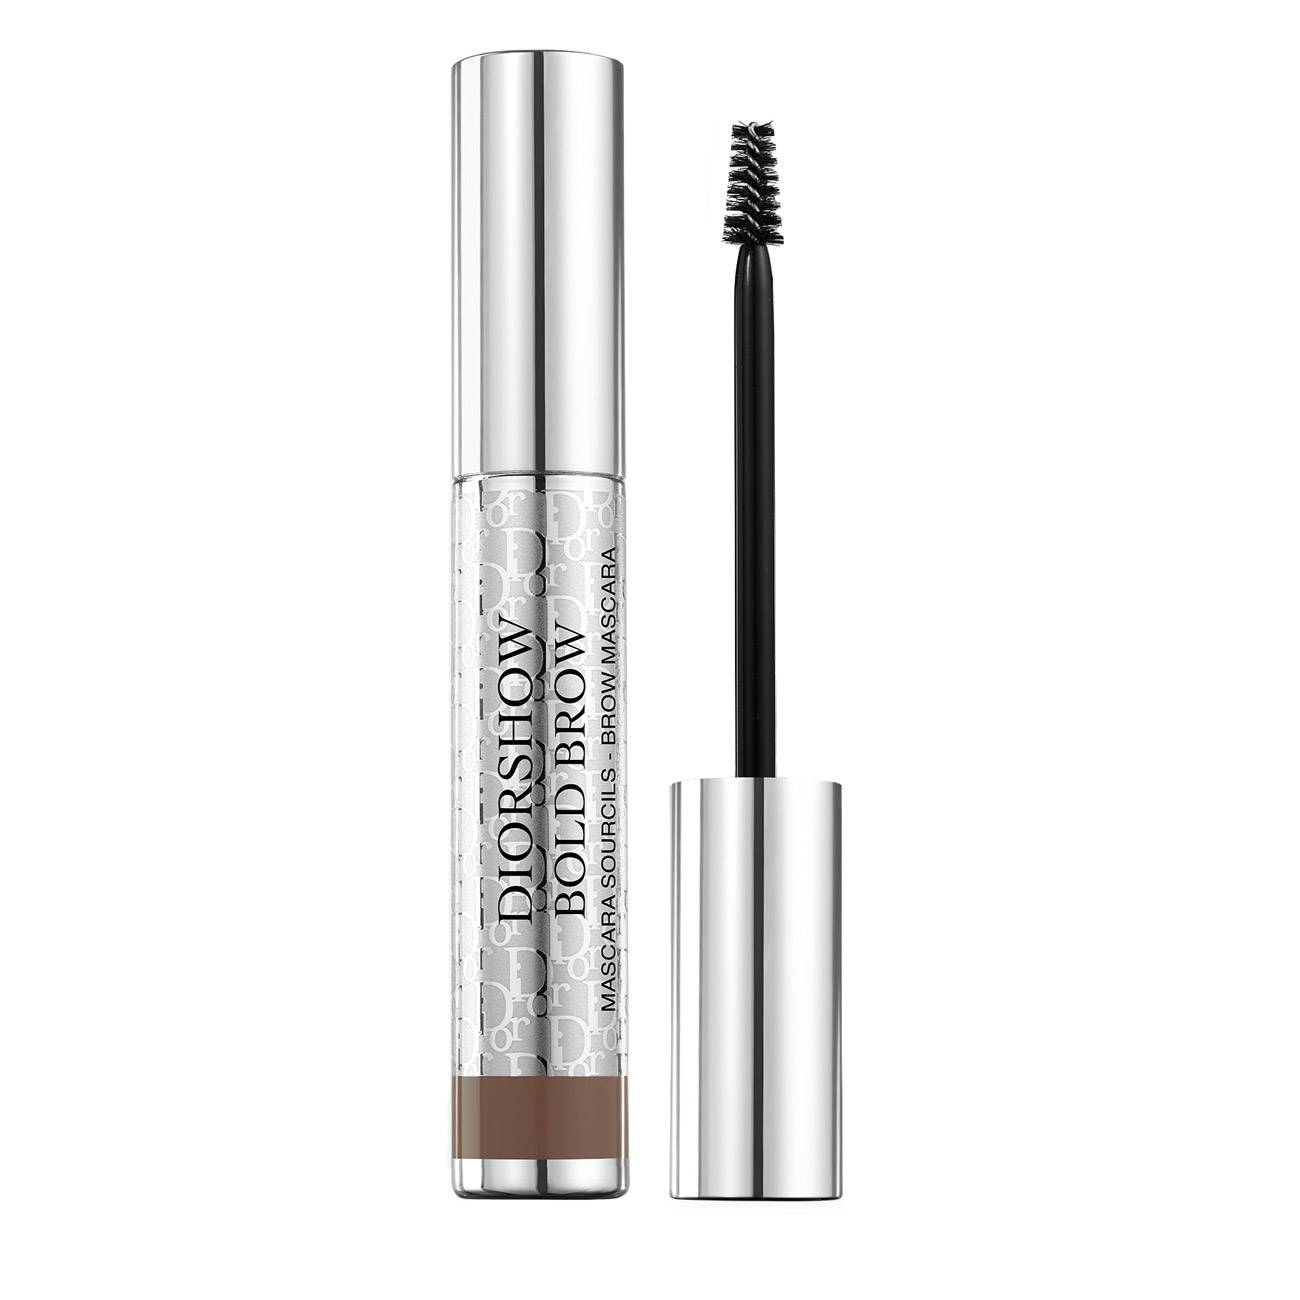 DIORSHOW BOLD BROW - 5 ml 002-Dark imagine produs